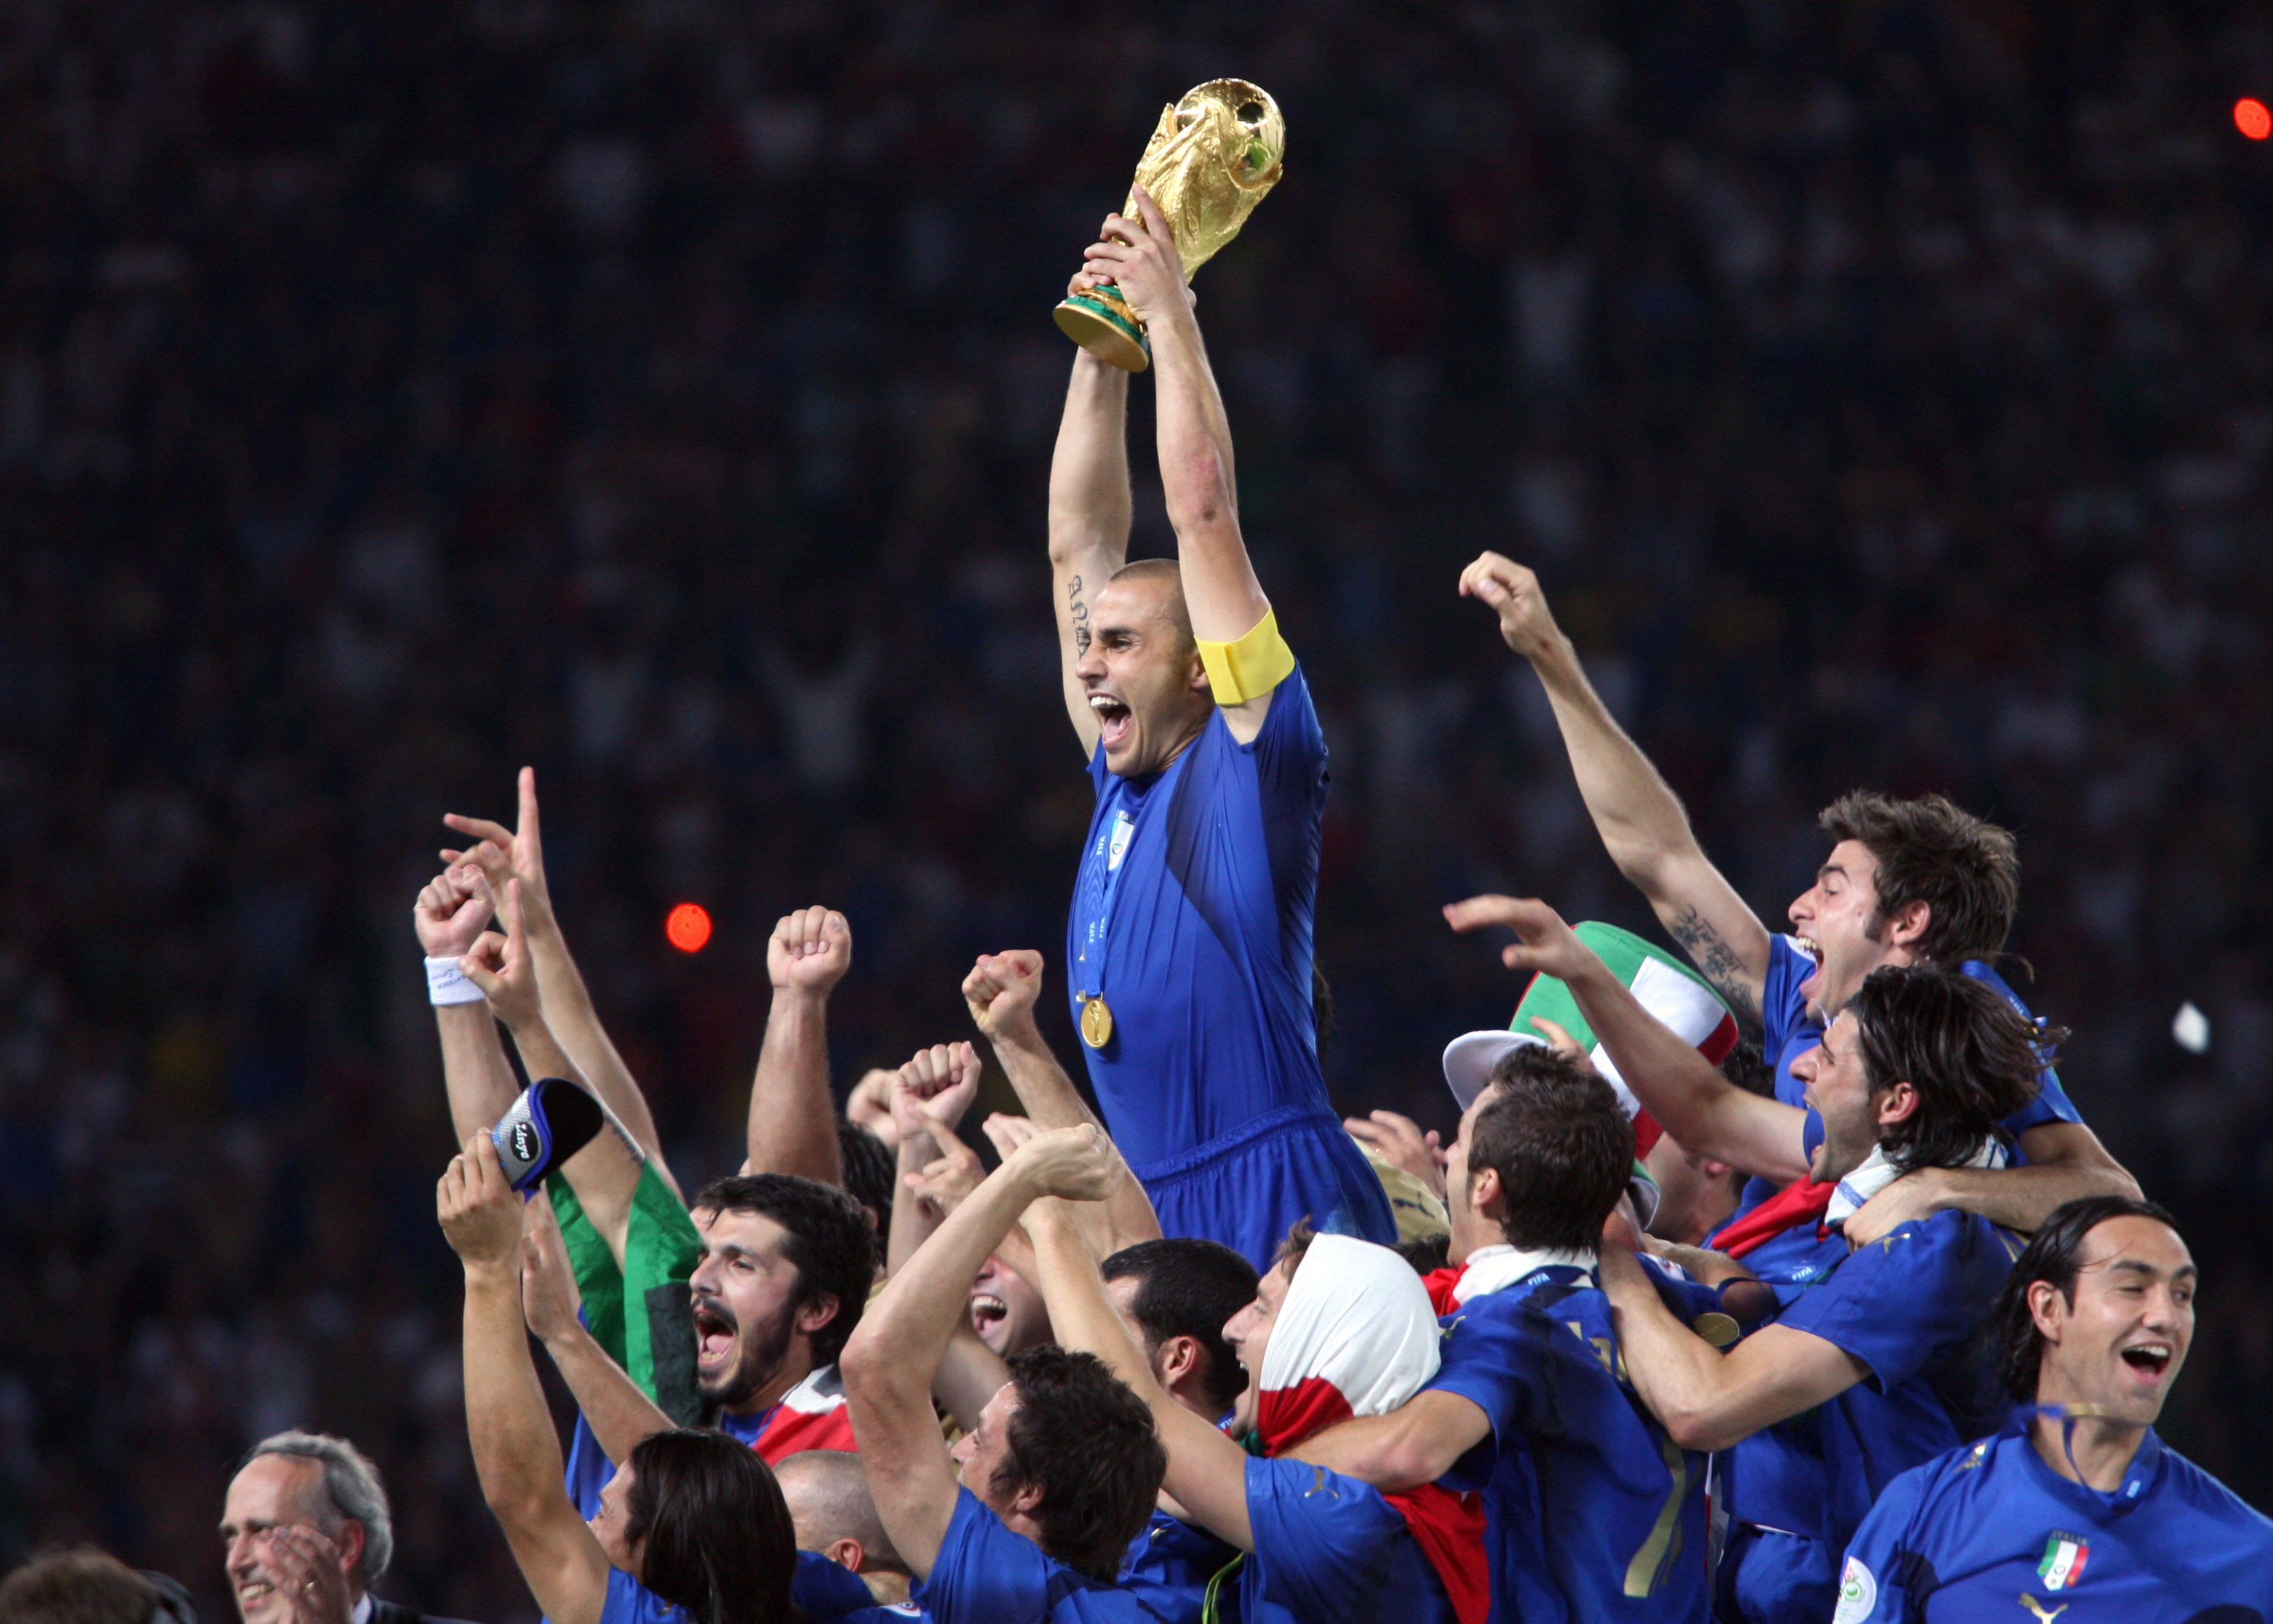 Italy won the World Cup in 2006 but who will do it this time around?.